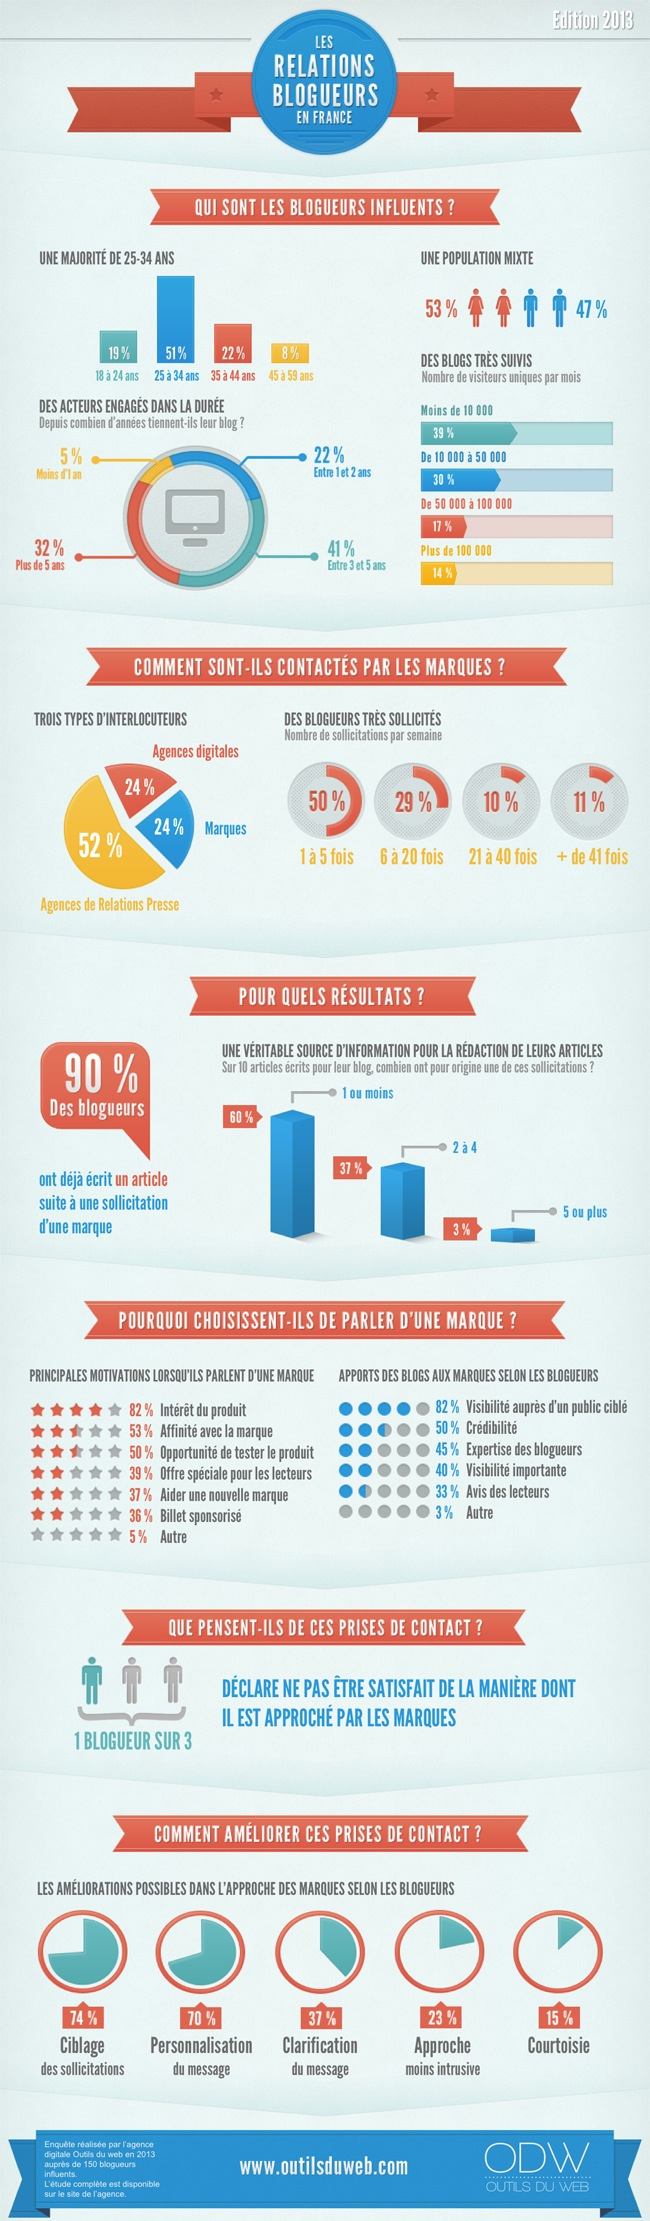 infographie-relations-blogueurs